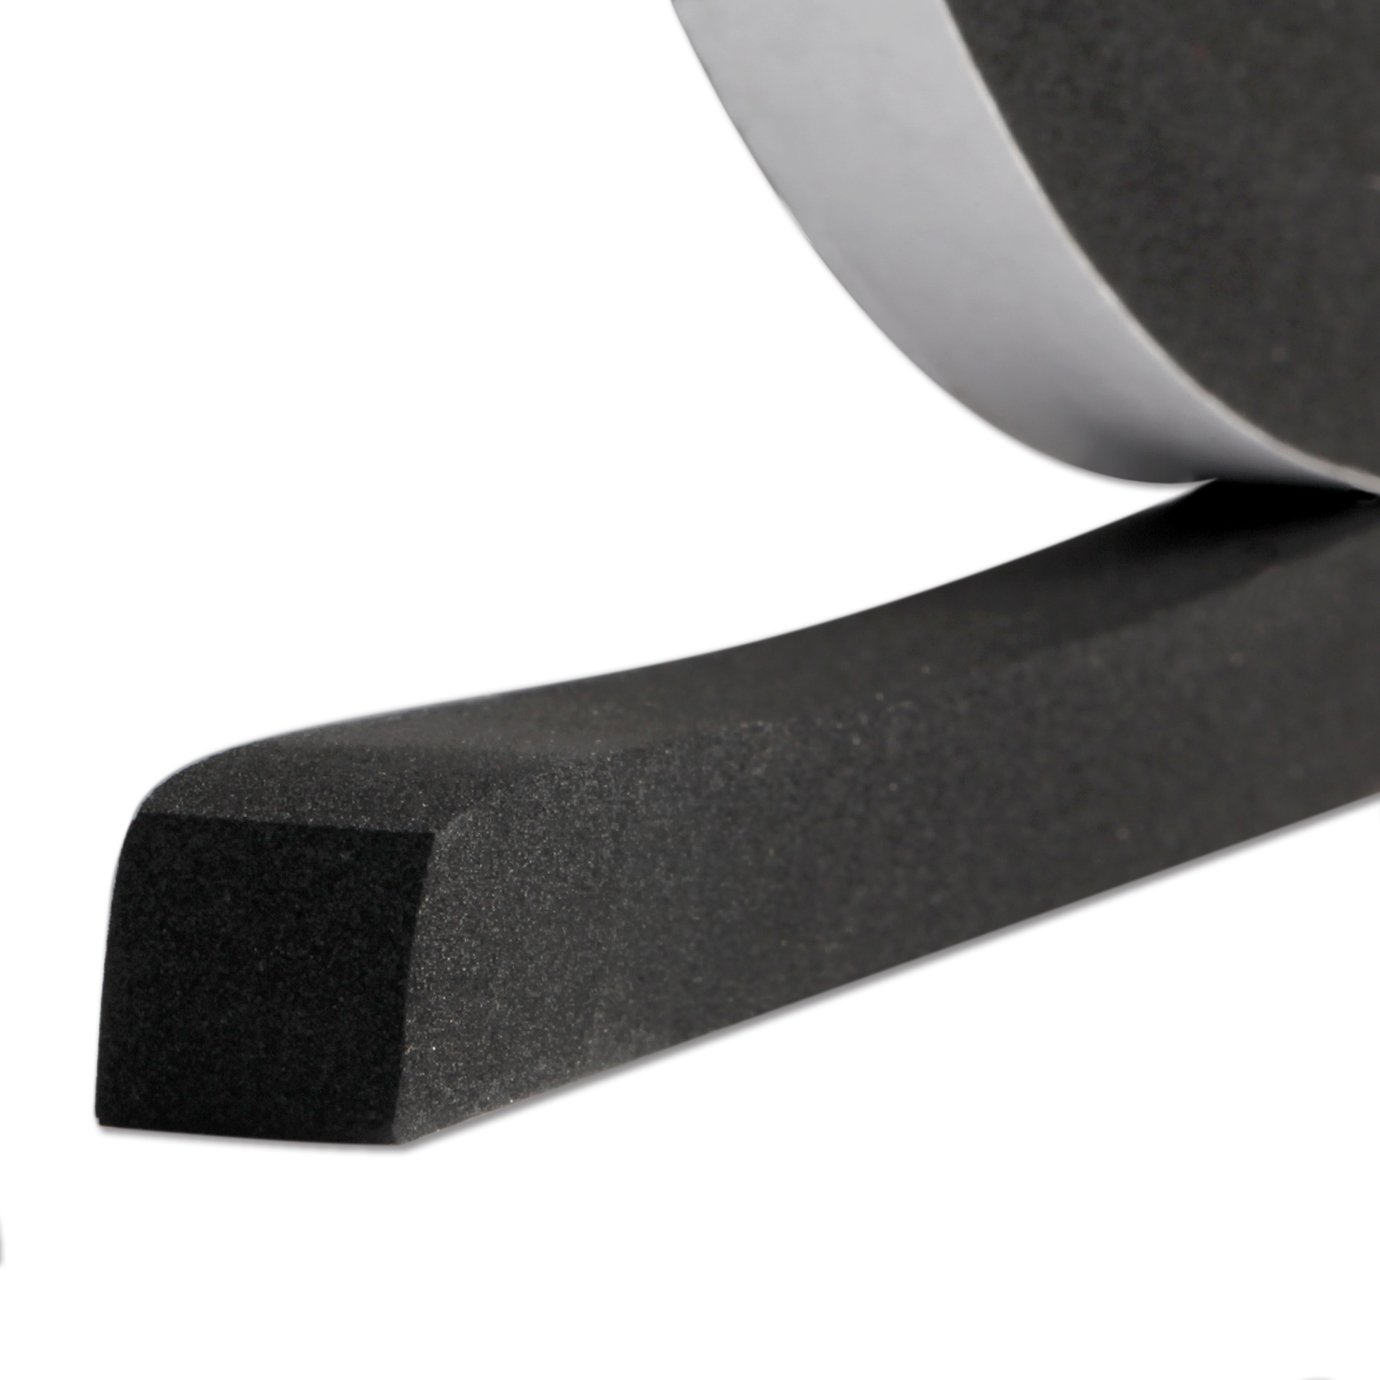 Thick Foam Tape, Weather Stripping for Windows and Doors Adhesive Sound Proof Closed Cell 1/2 inch Wide X 1/2 inch Thick X 13 Feet Long (1/2in 1/2in)